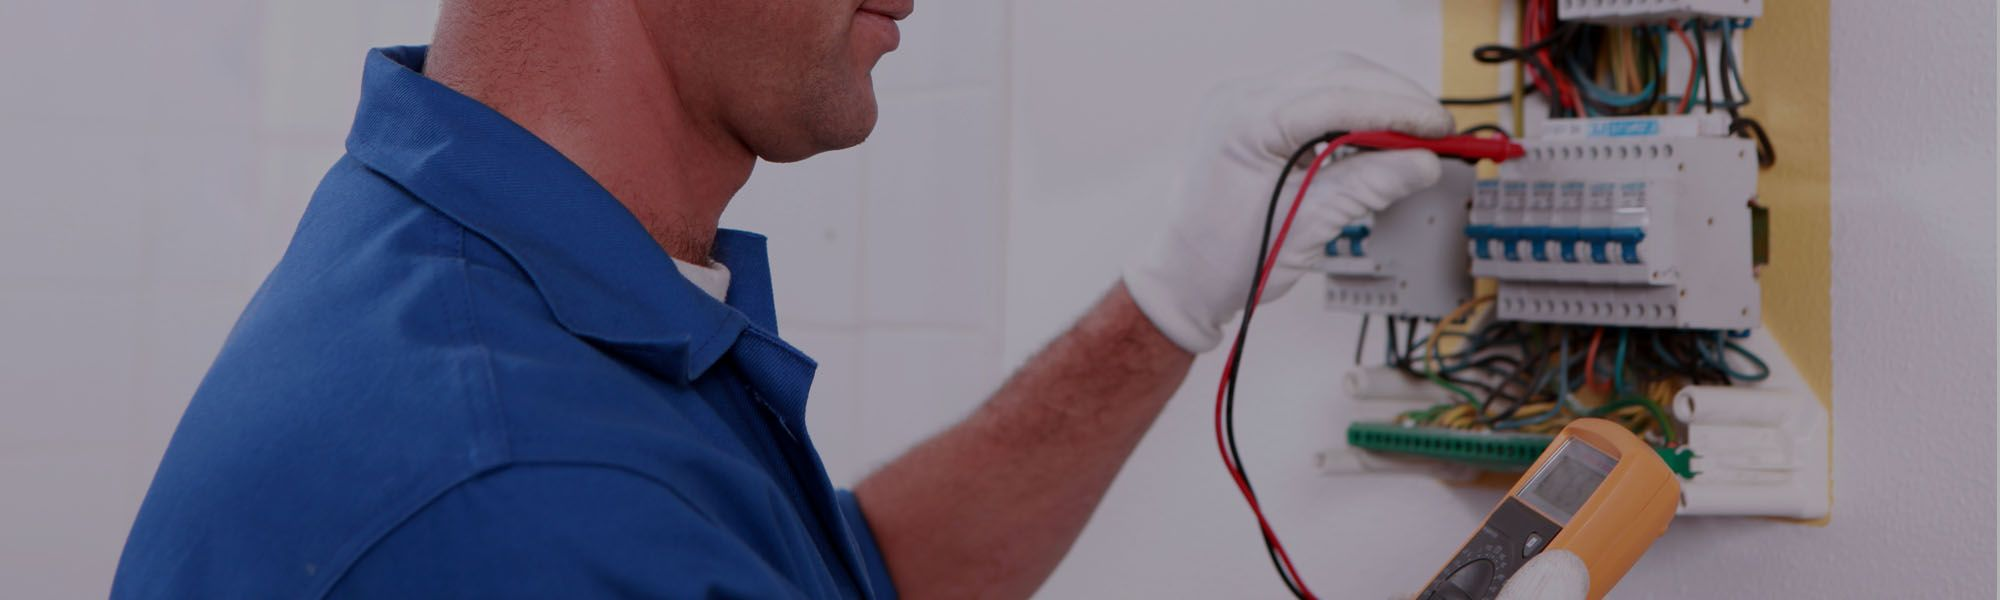 Emergency Electrician Houston If Your Experiencing Electrical Issues During This Holiday Weekend Conta Emergency Electrician Commercial Electrician Emergency